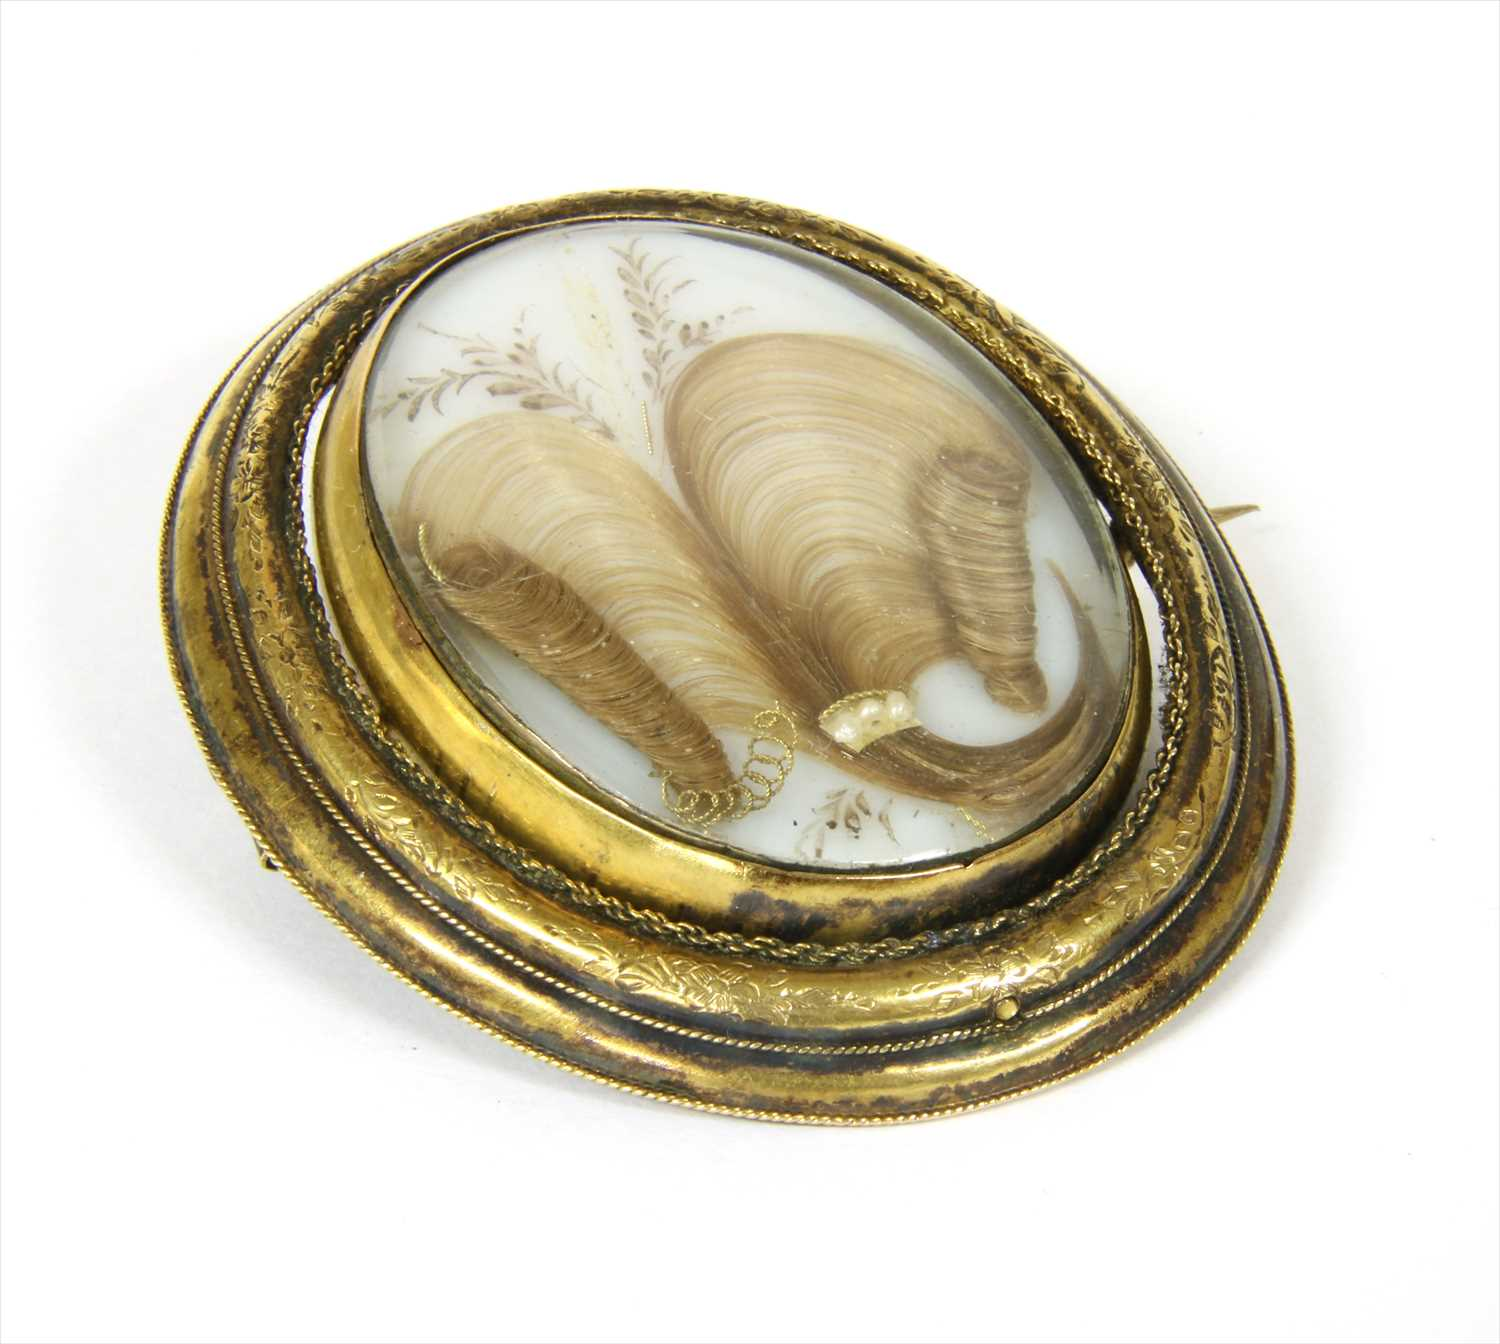 Lot 15 - A Victorian gold mourning brooch